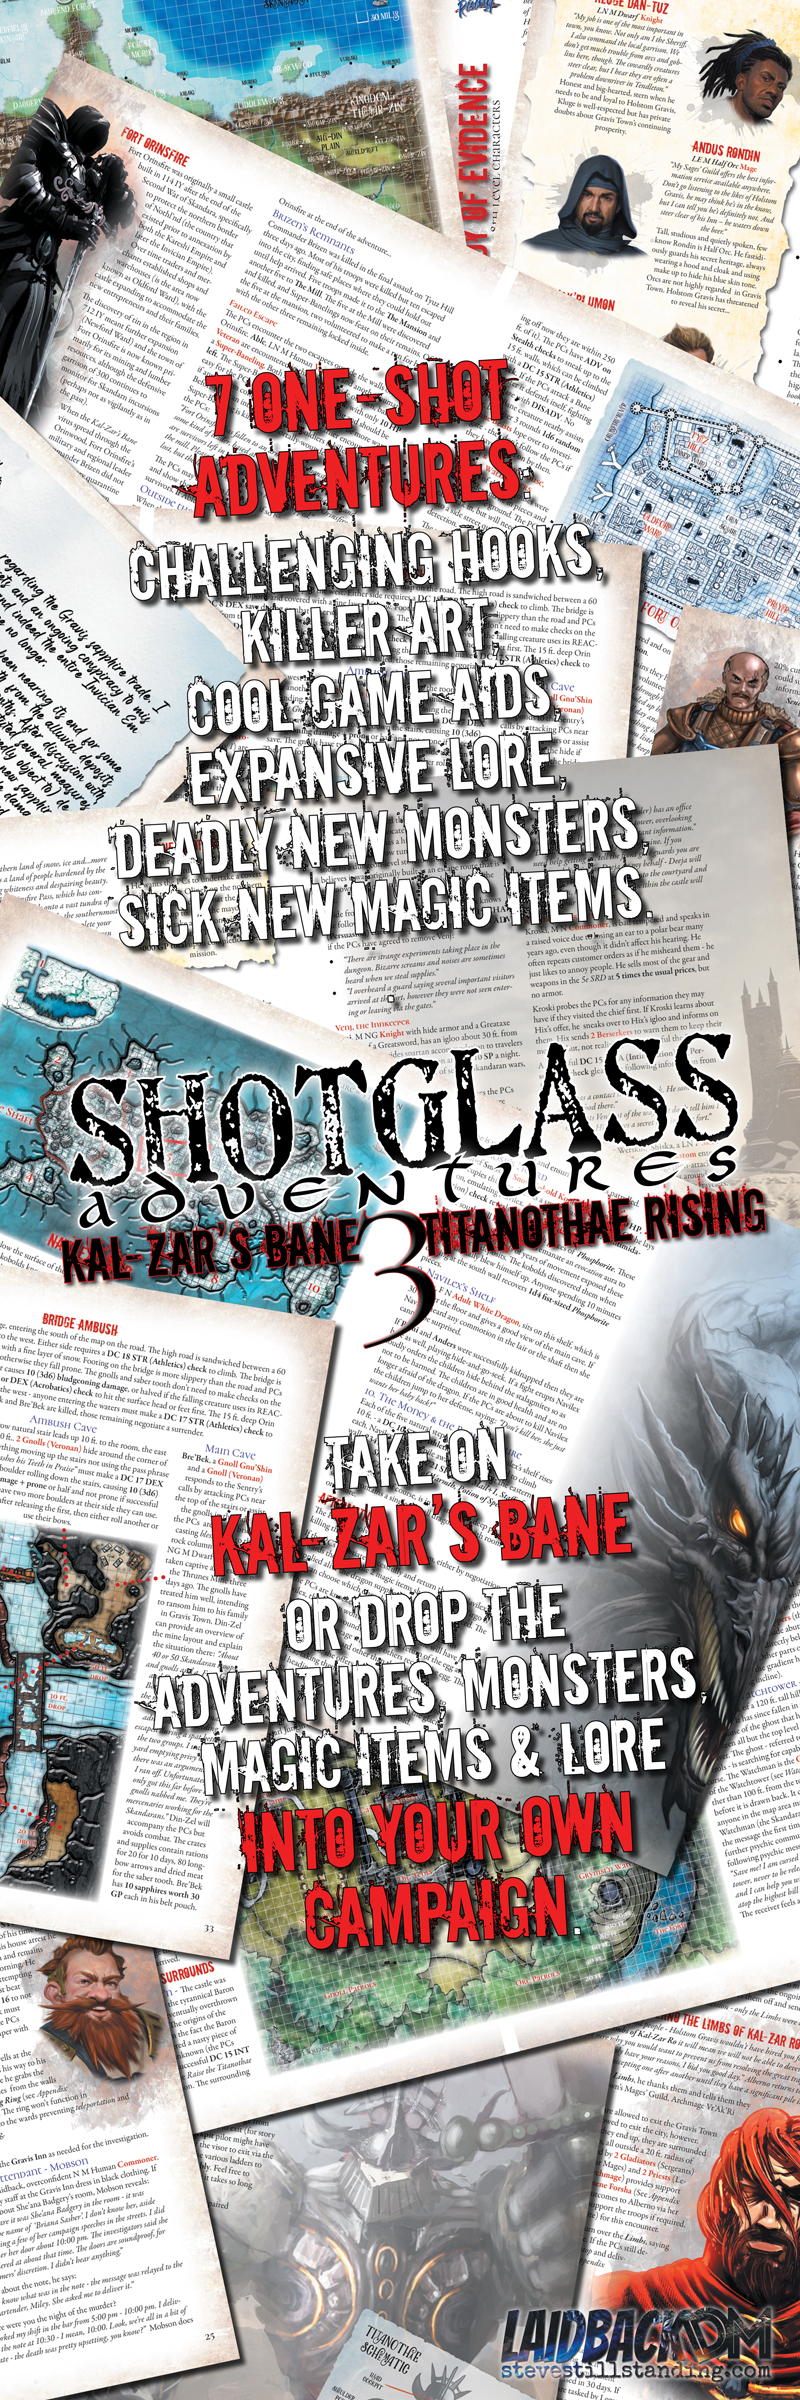 Shotglass Adventures Kal-Zar's Bane 3 Internal Pages